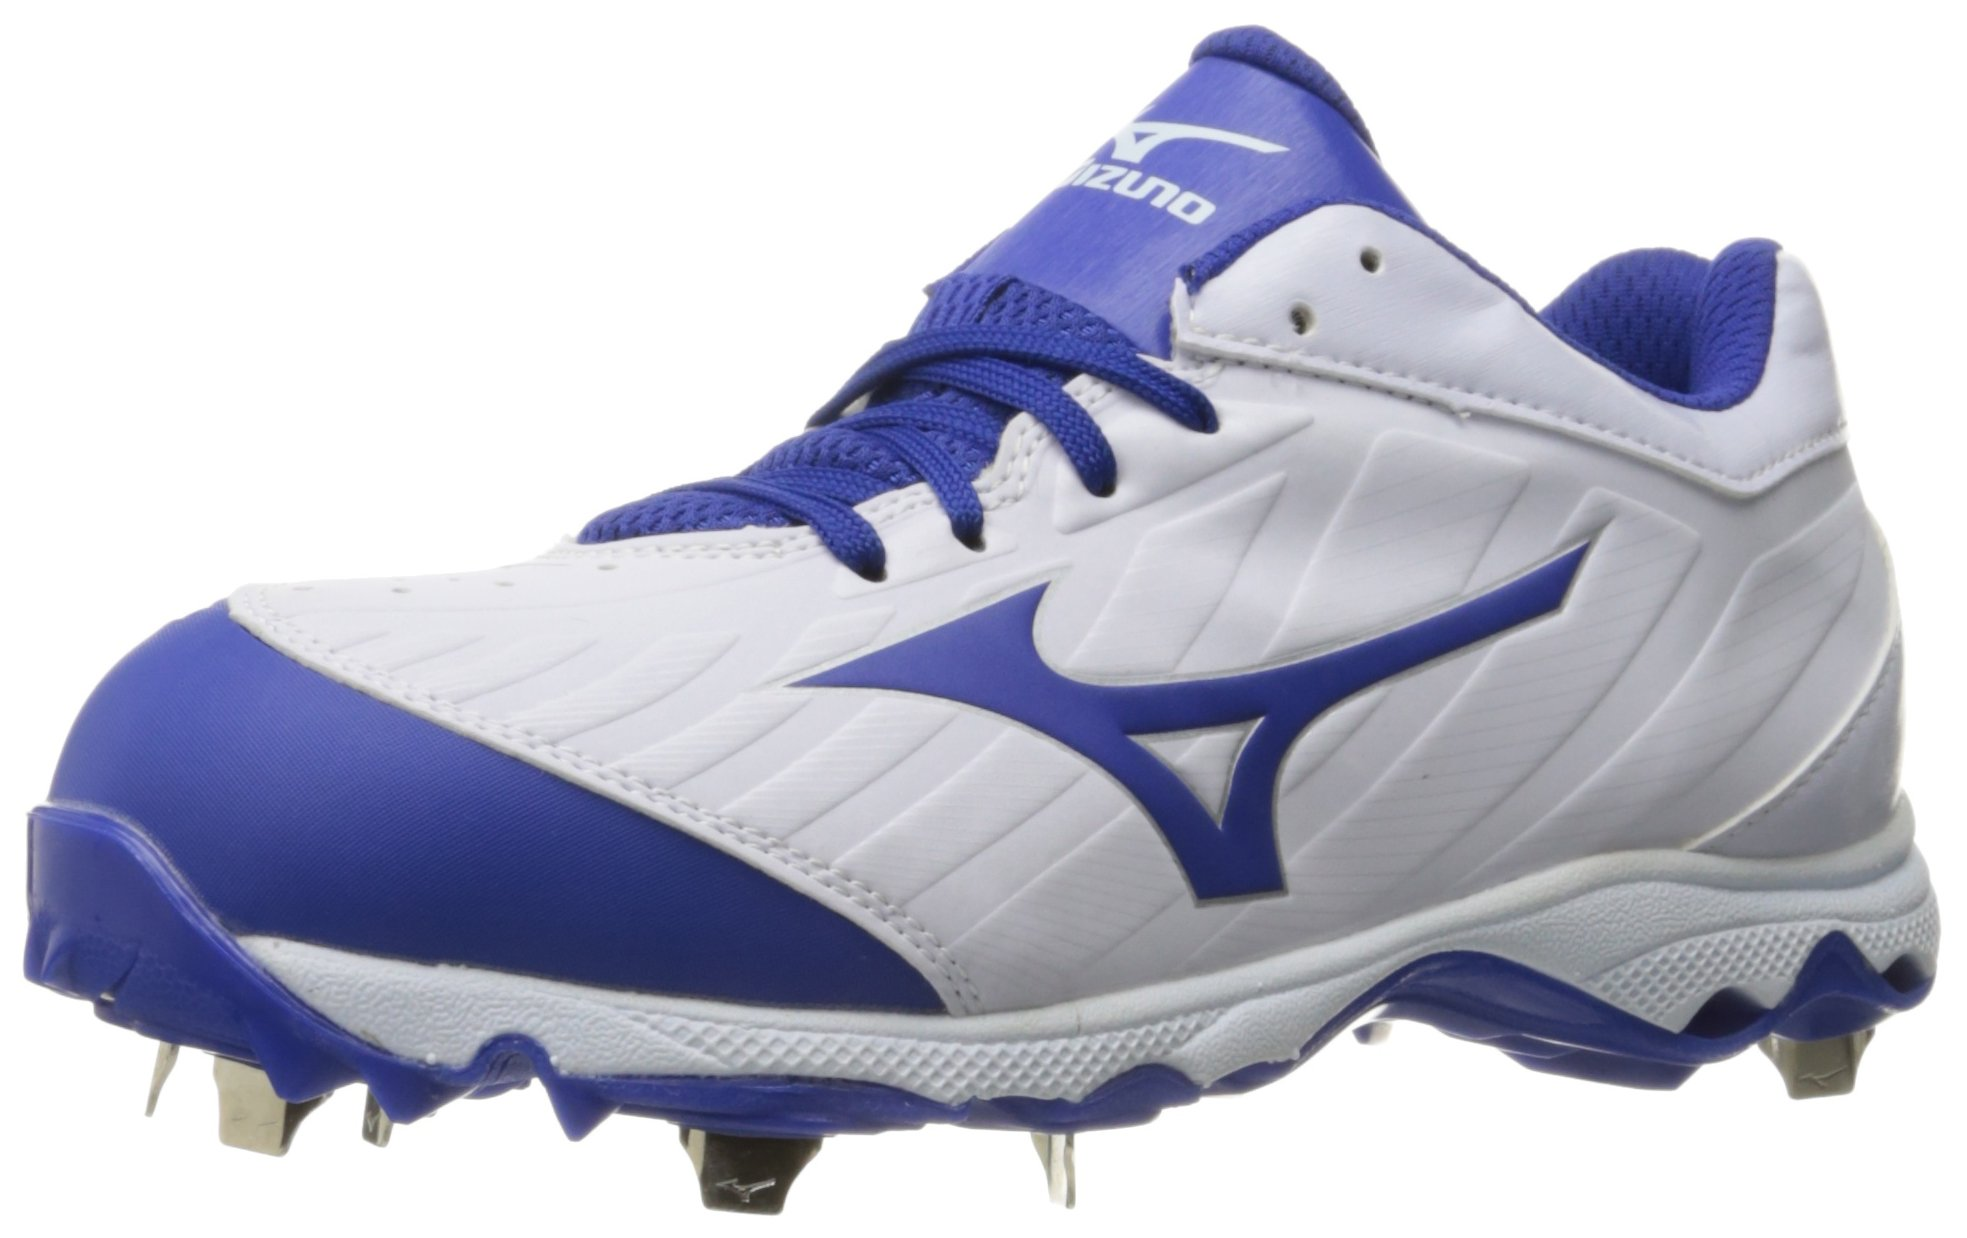 Mizuno Women's 9-Spike Advanced Sweep 3 Softball Shoe, White-Royal, 9.5 D US by Mizuno